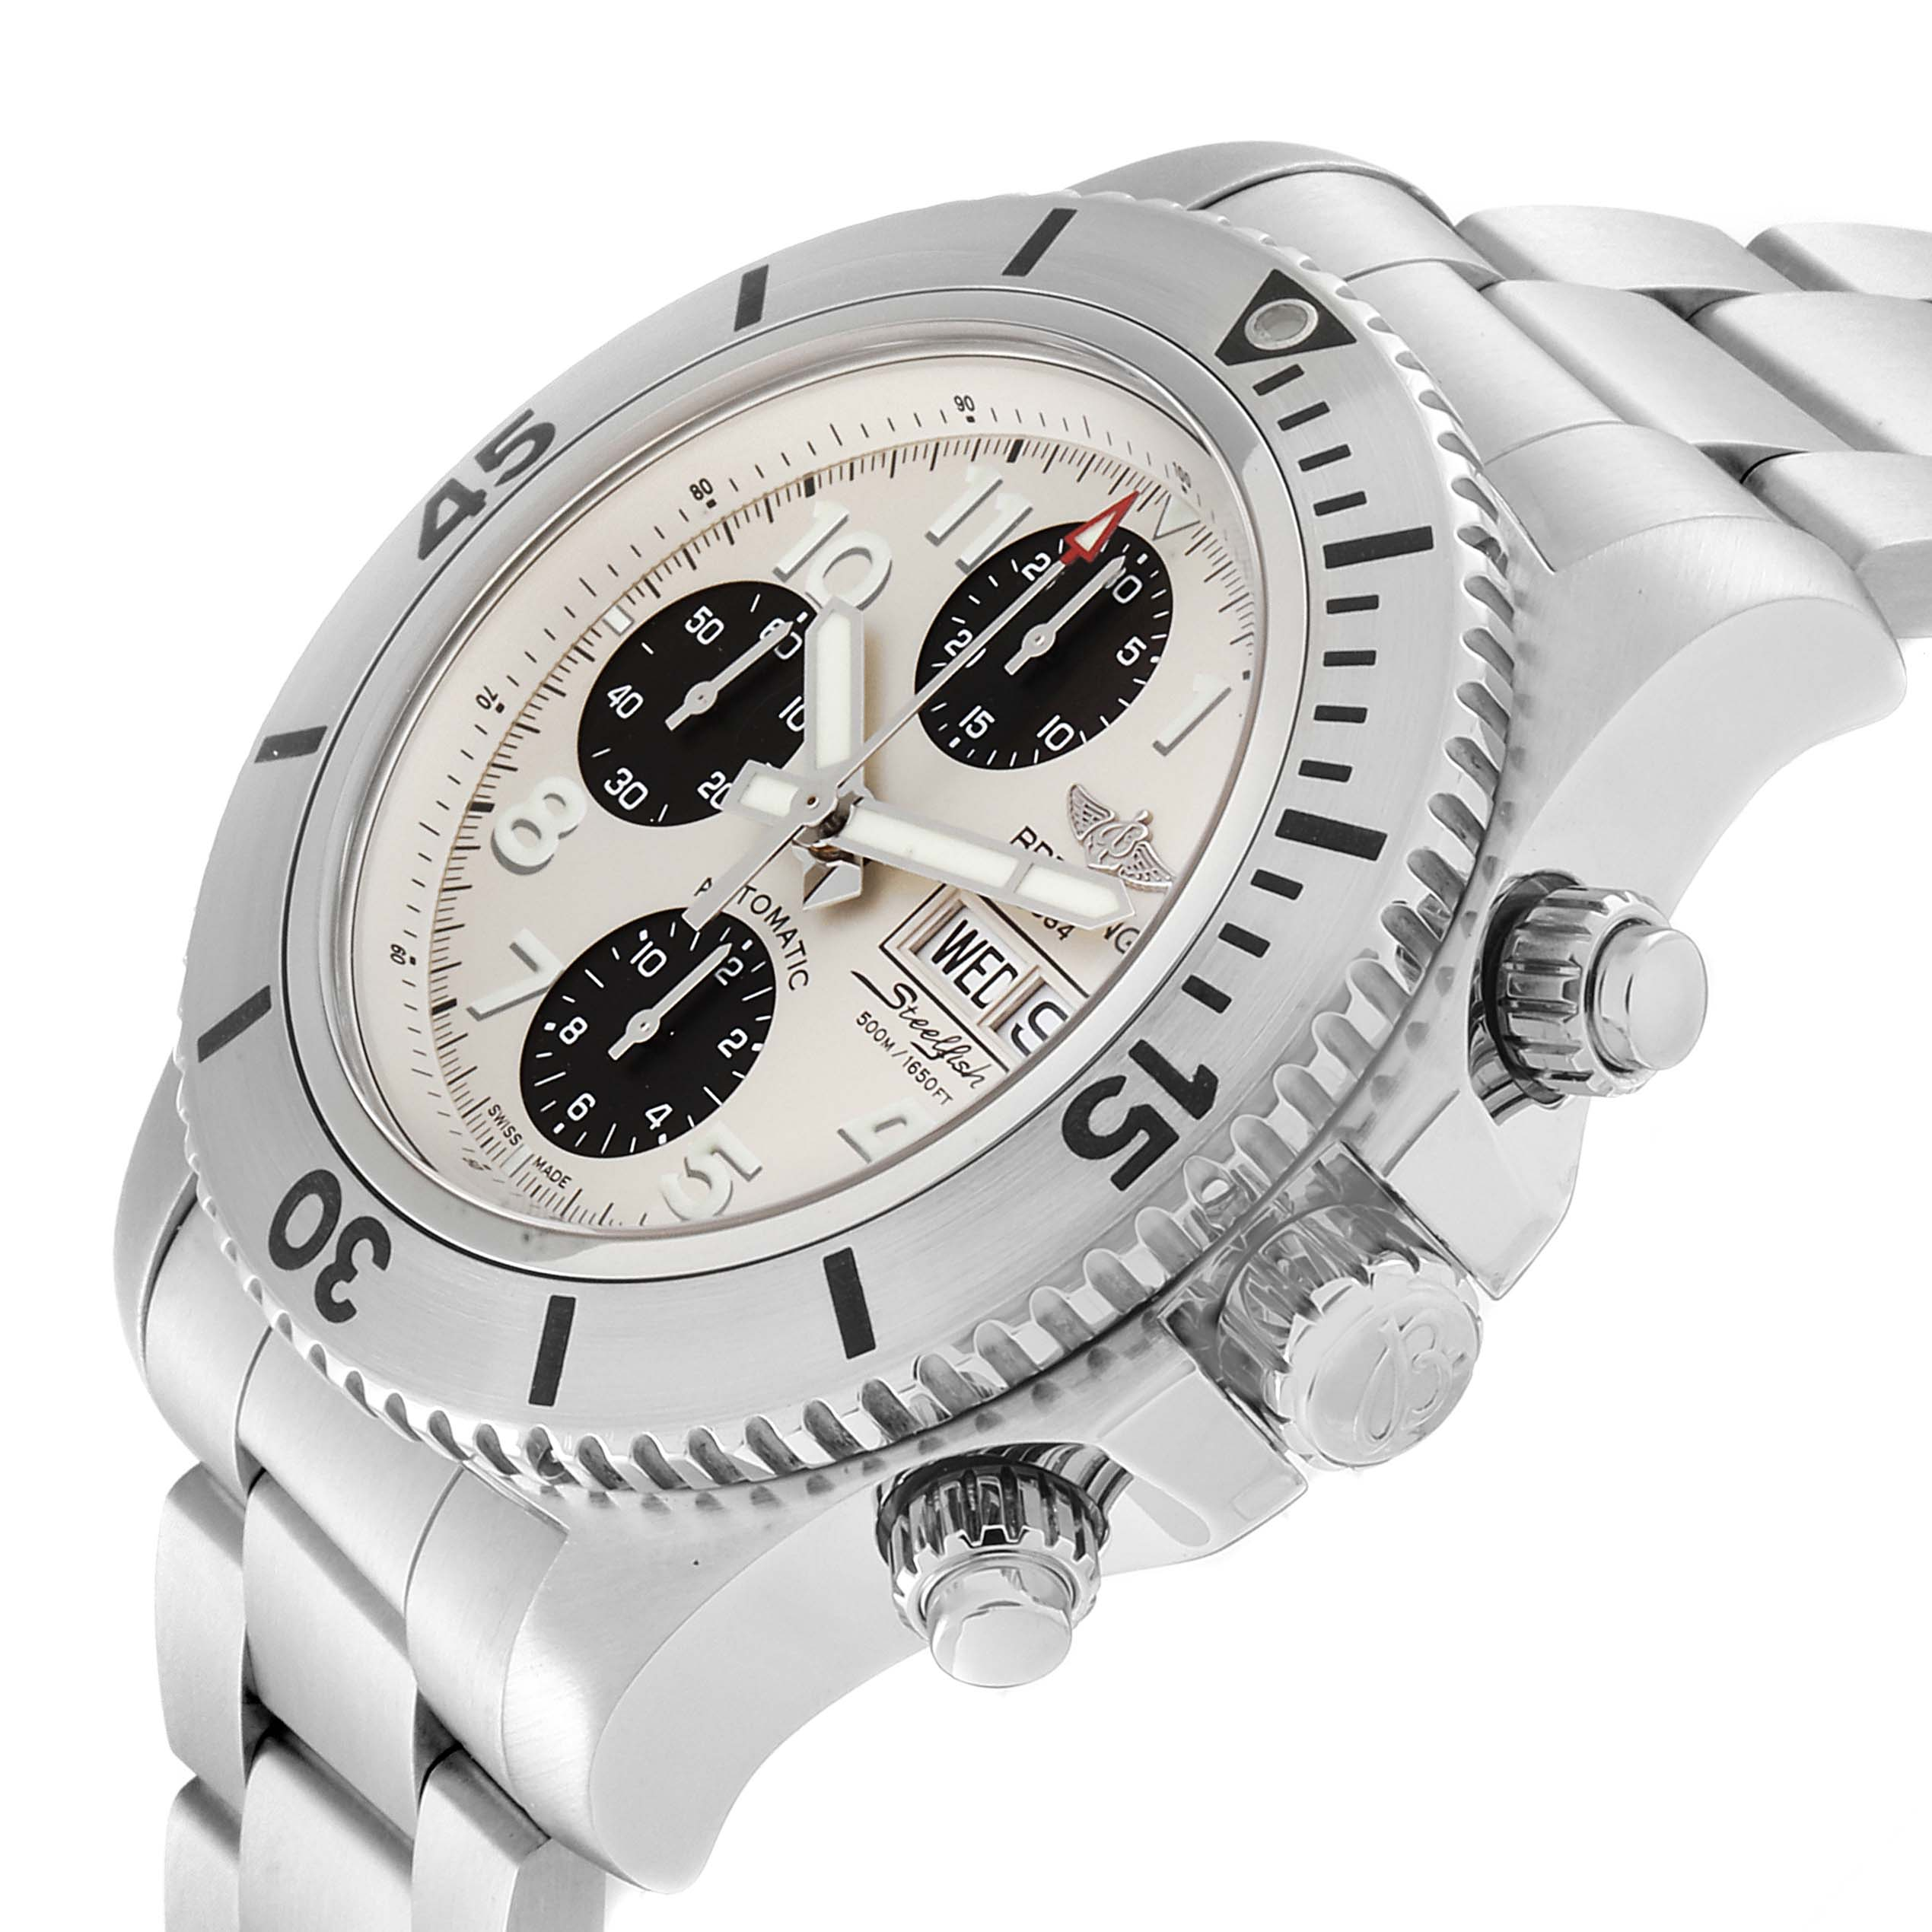 Breitling Aeromarine SuperOcean Chronograph II Watch A13341 Box Papers SwissWatchExpo